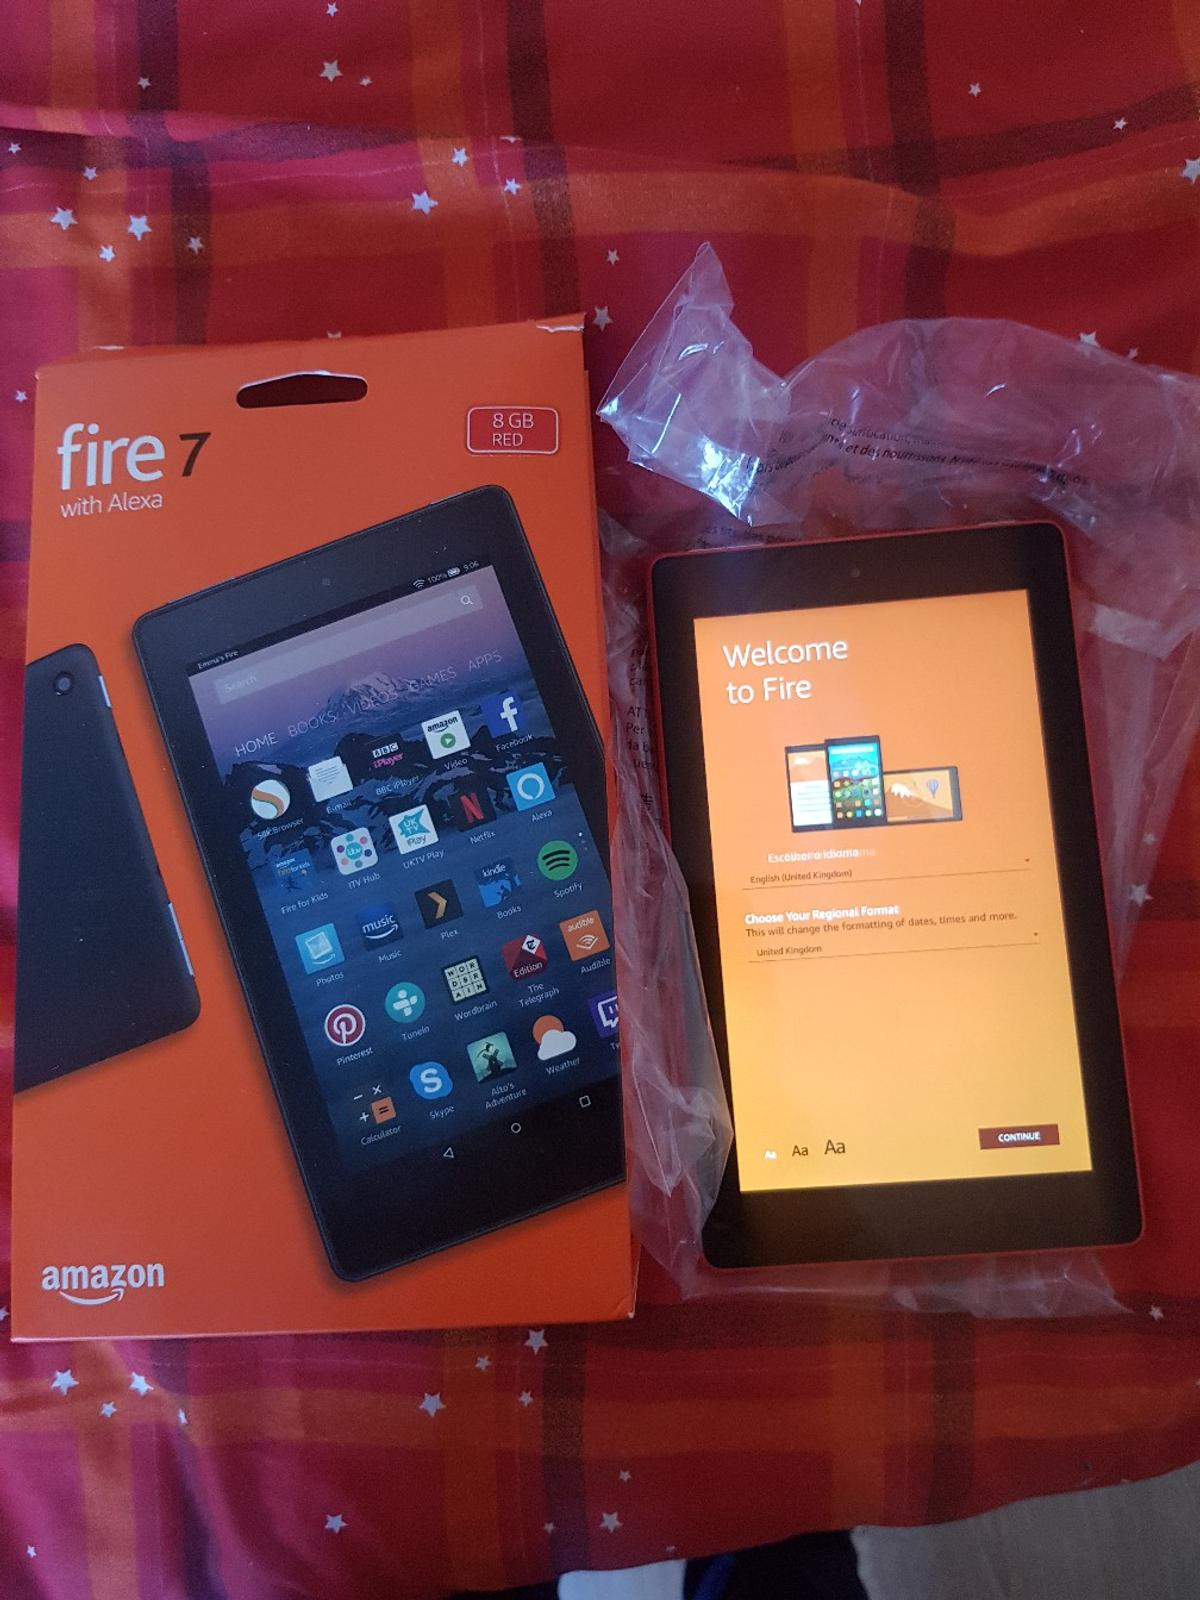 Amazon fire 7 tablet with Alexa in for £45 00 for sale - Shpock